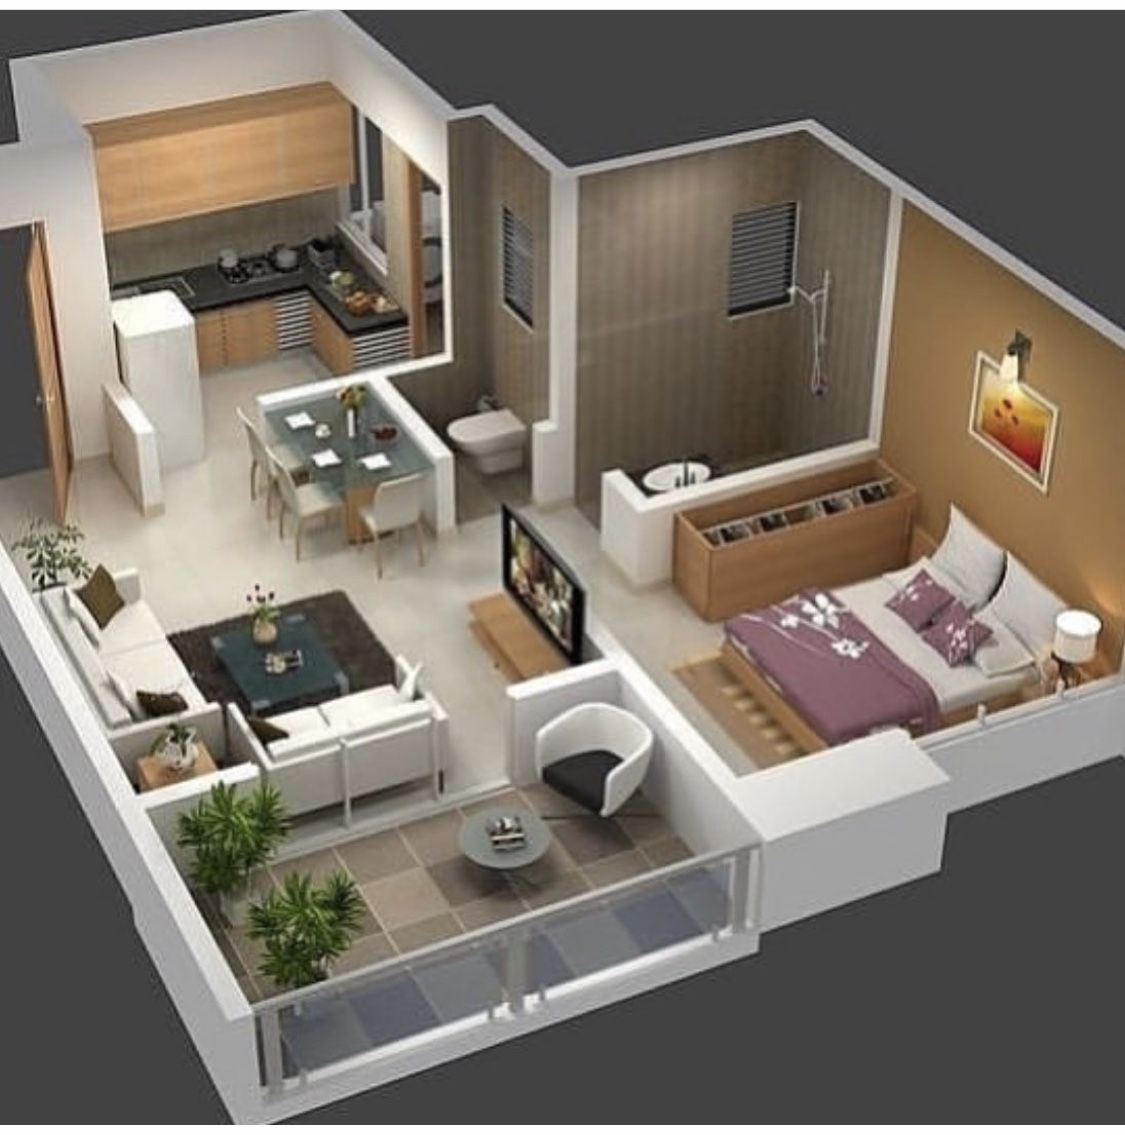 Pin By Dhiren On My Home Decorating In 2020 One Bedroom House Plans Small Apartment Plans One Bedroom House